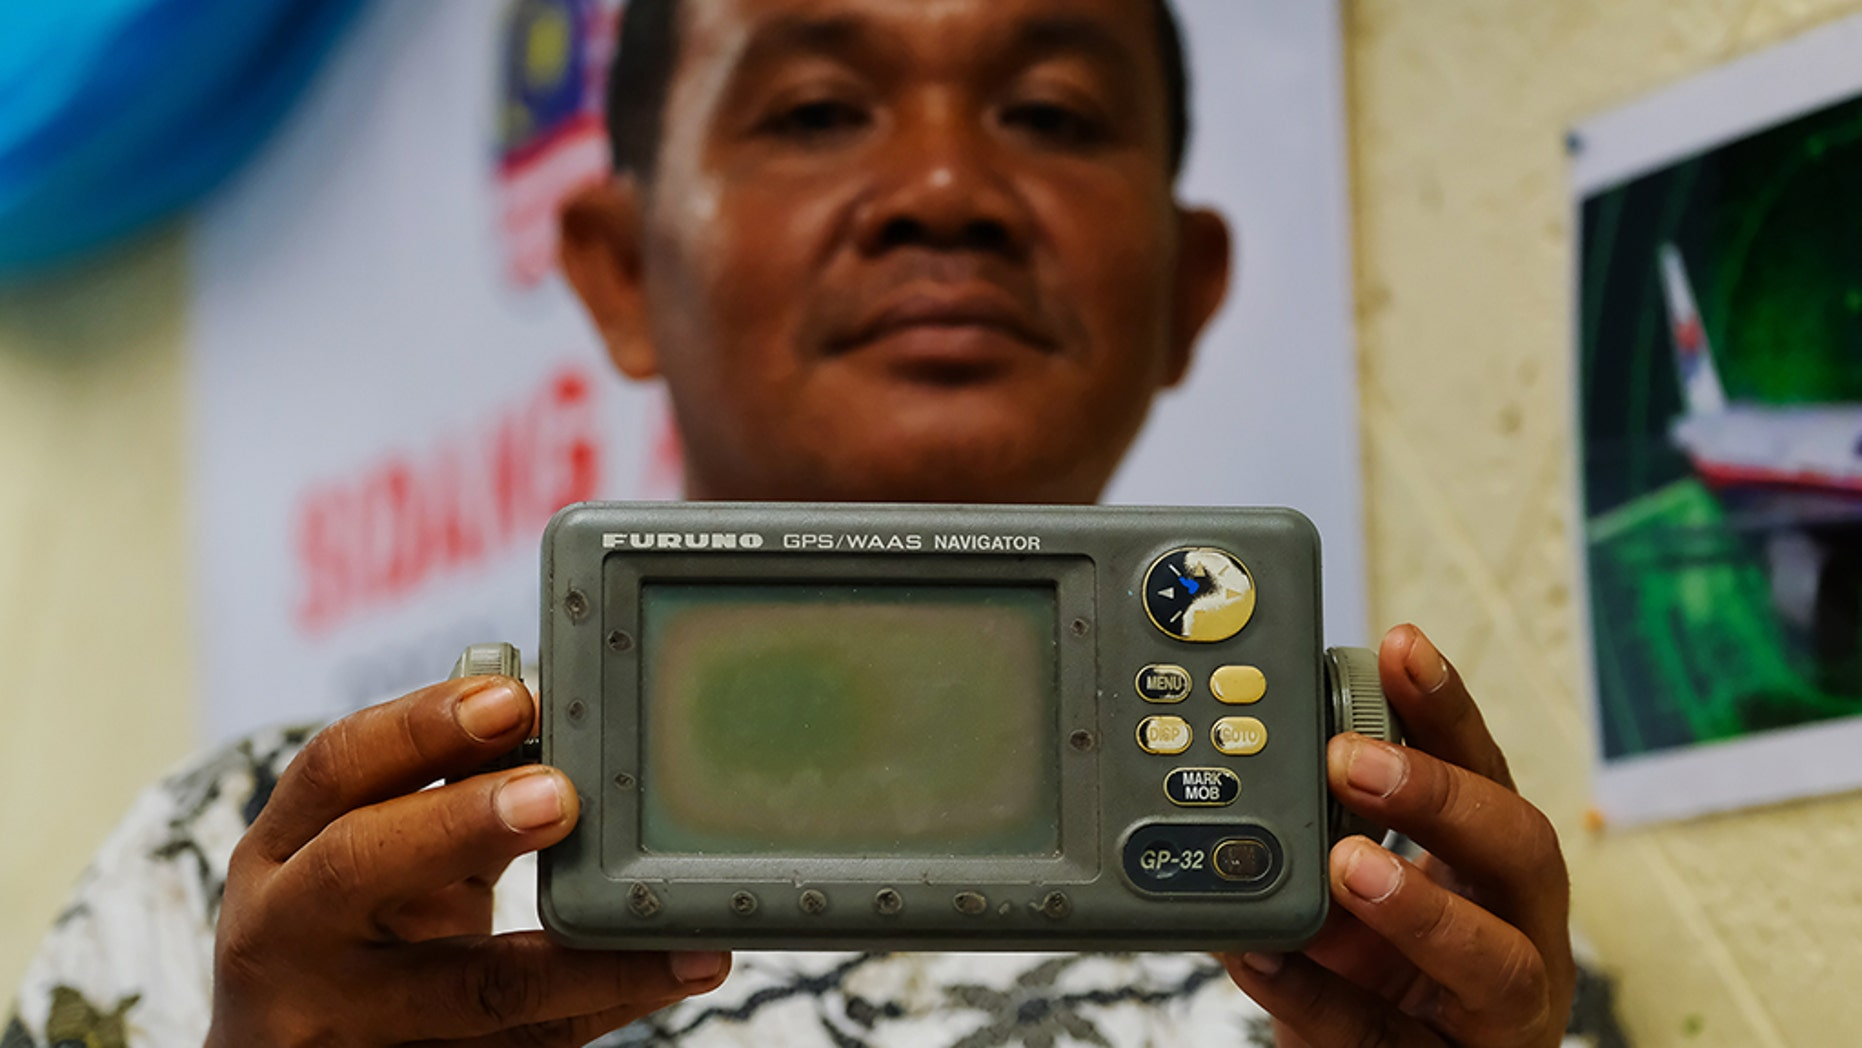 Rusli Khusmin, 42, a fisherman from Indonesia shows his GPS Navigator which he used to record the coordinates of where he believes Malaysia Airlines Flight MH370 crashed into the Sumatra Indonesia Sea during a news conference on January 16, 2019 in Subang Jaya outside Kuala Lumpur, Malaysia.